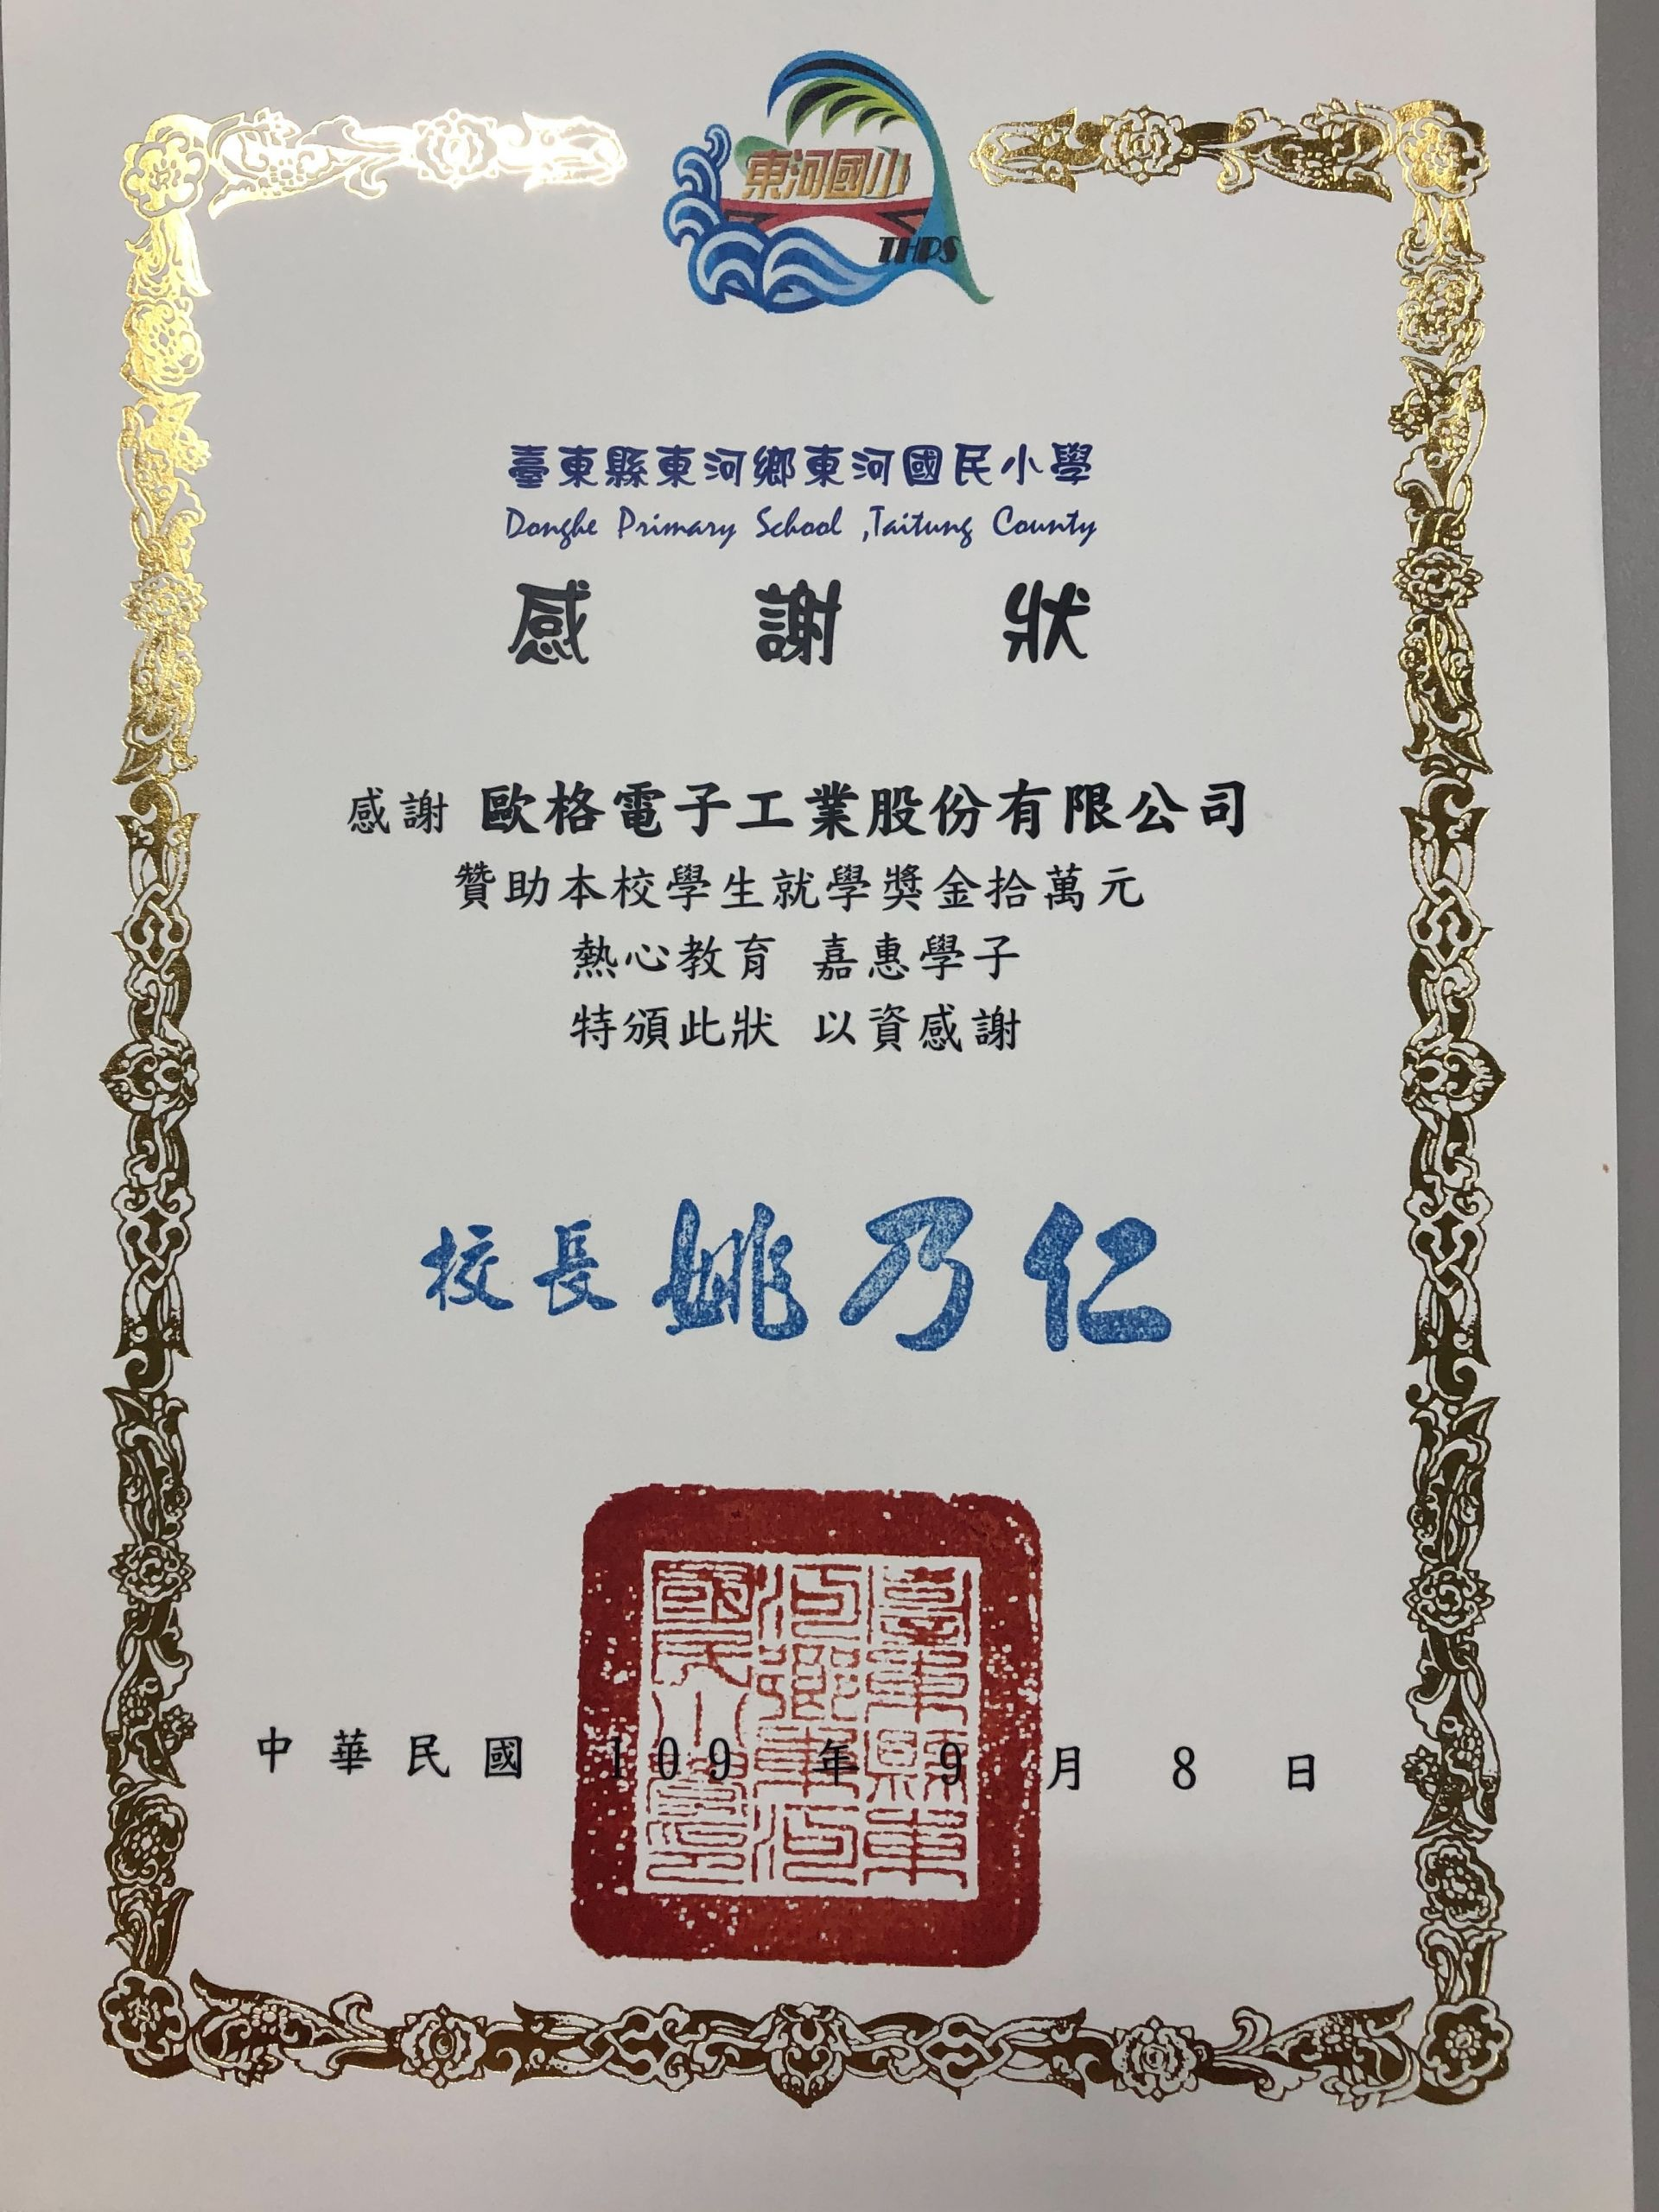 AHOKU awarded the 2020 Certificate of Scholarship's Appreciation from Donghe Primary School